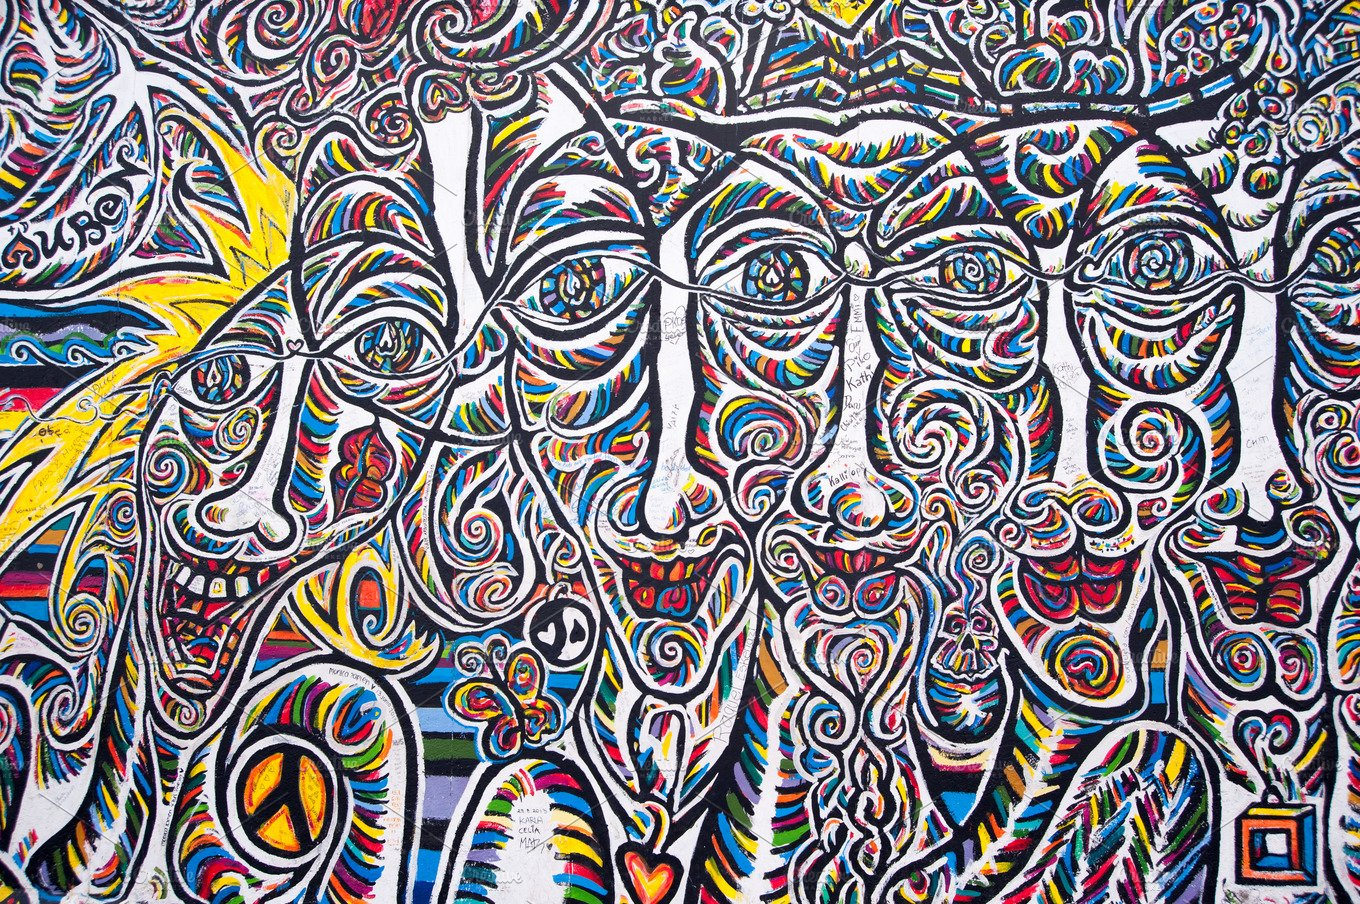 Berlin Wall Art Berlin Wall Art Faces Arts Entertainment Photos